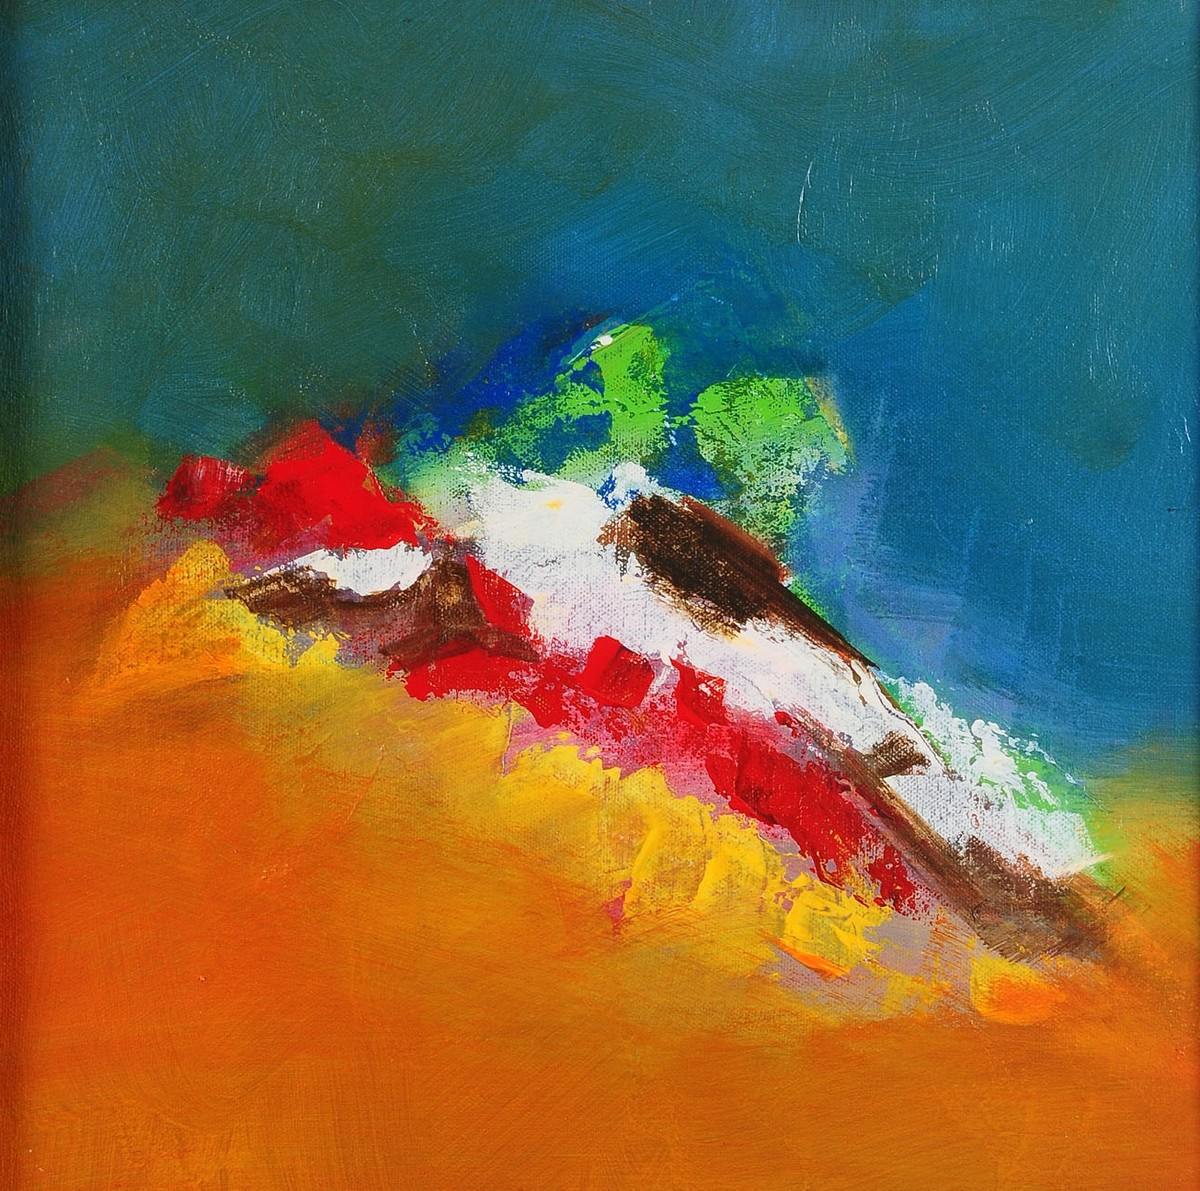 Blue Day 4 by Sadhana Raddi, Abstract Painting, Acrylic on Canvas, Orange color